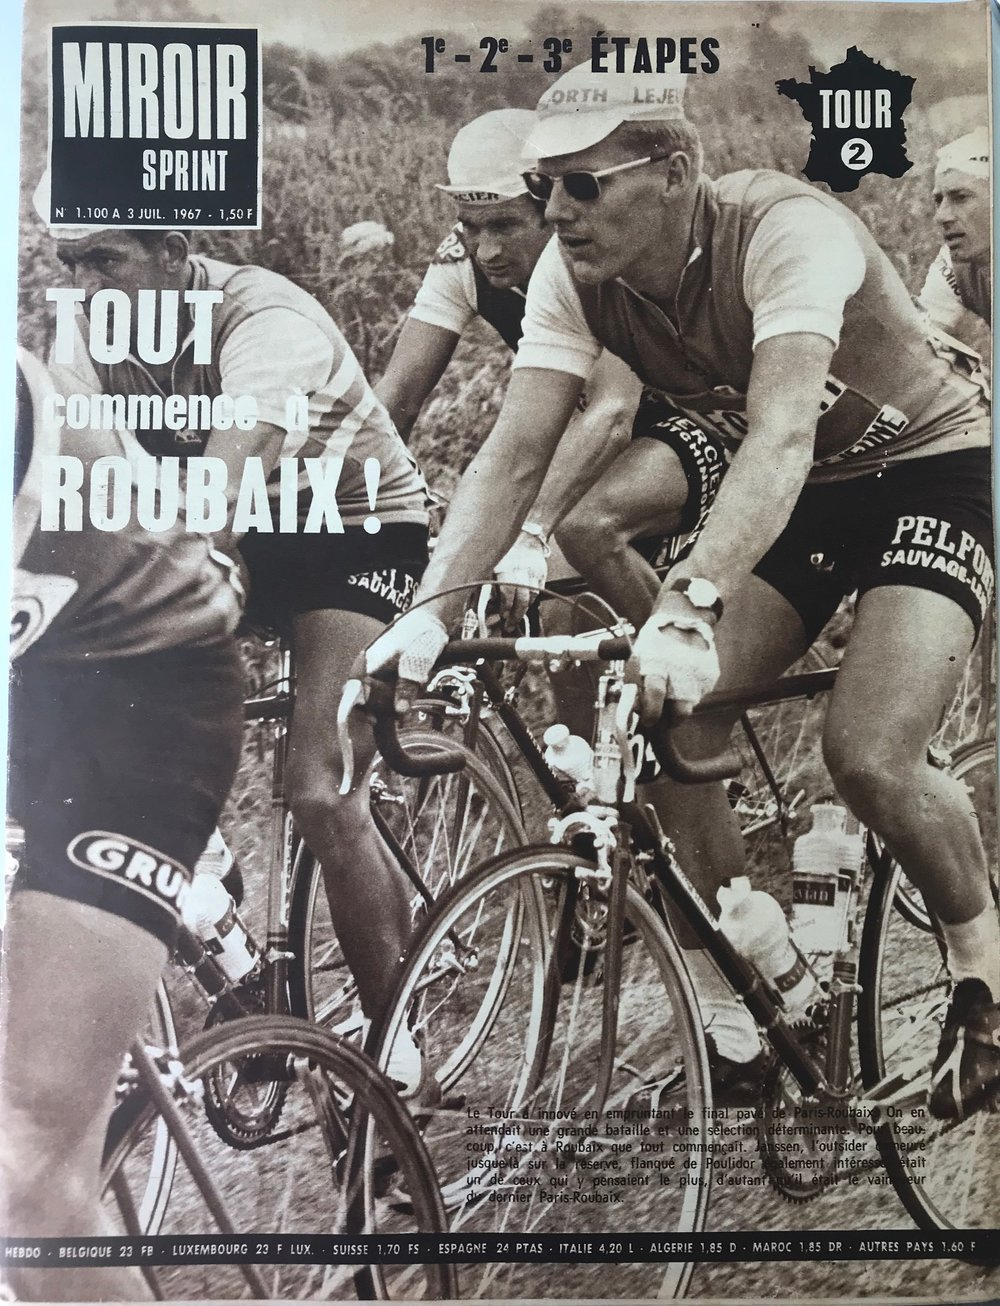 Mirror Sprint magazine from July 1967 features the Paris Roubaix Classic.    Jan Janssen (Pelforth Sauvage) and Raymond Poulidor (Mercier) were the leading riders of the day. The bikes of the era all featured MAFAC centre pull brakes, high flange hubs and pedal toe clips.